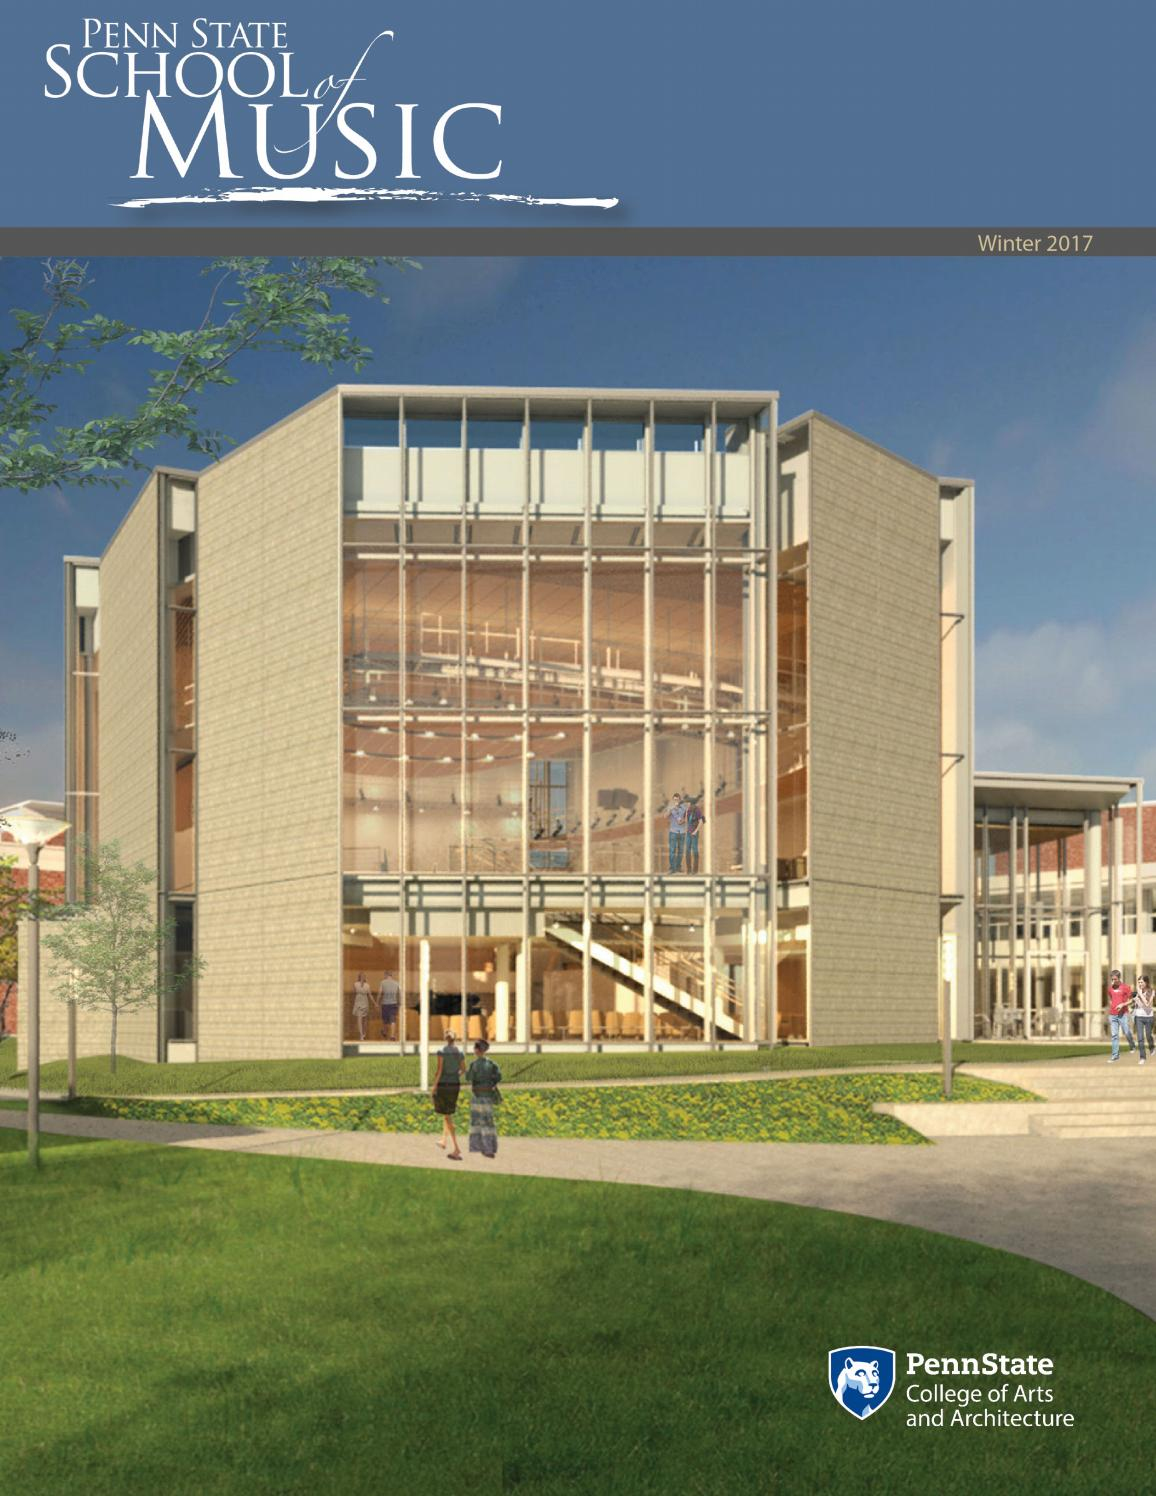 penn state school of music alumni news winter by russell penn state school of music alumni news winter 2017 by russell bloom issuu